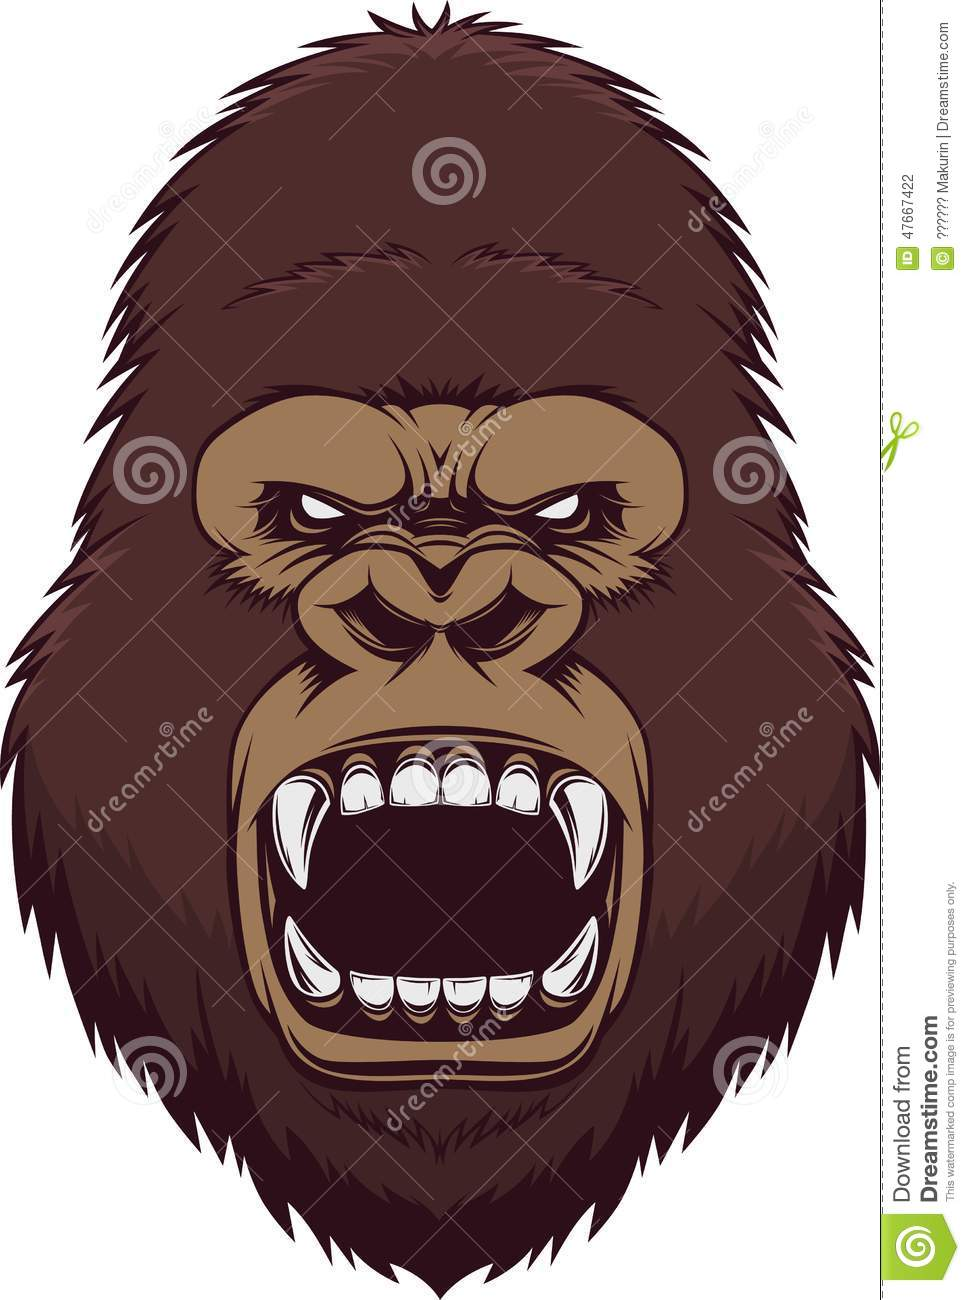 angry gorilla head drawing - photo #16